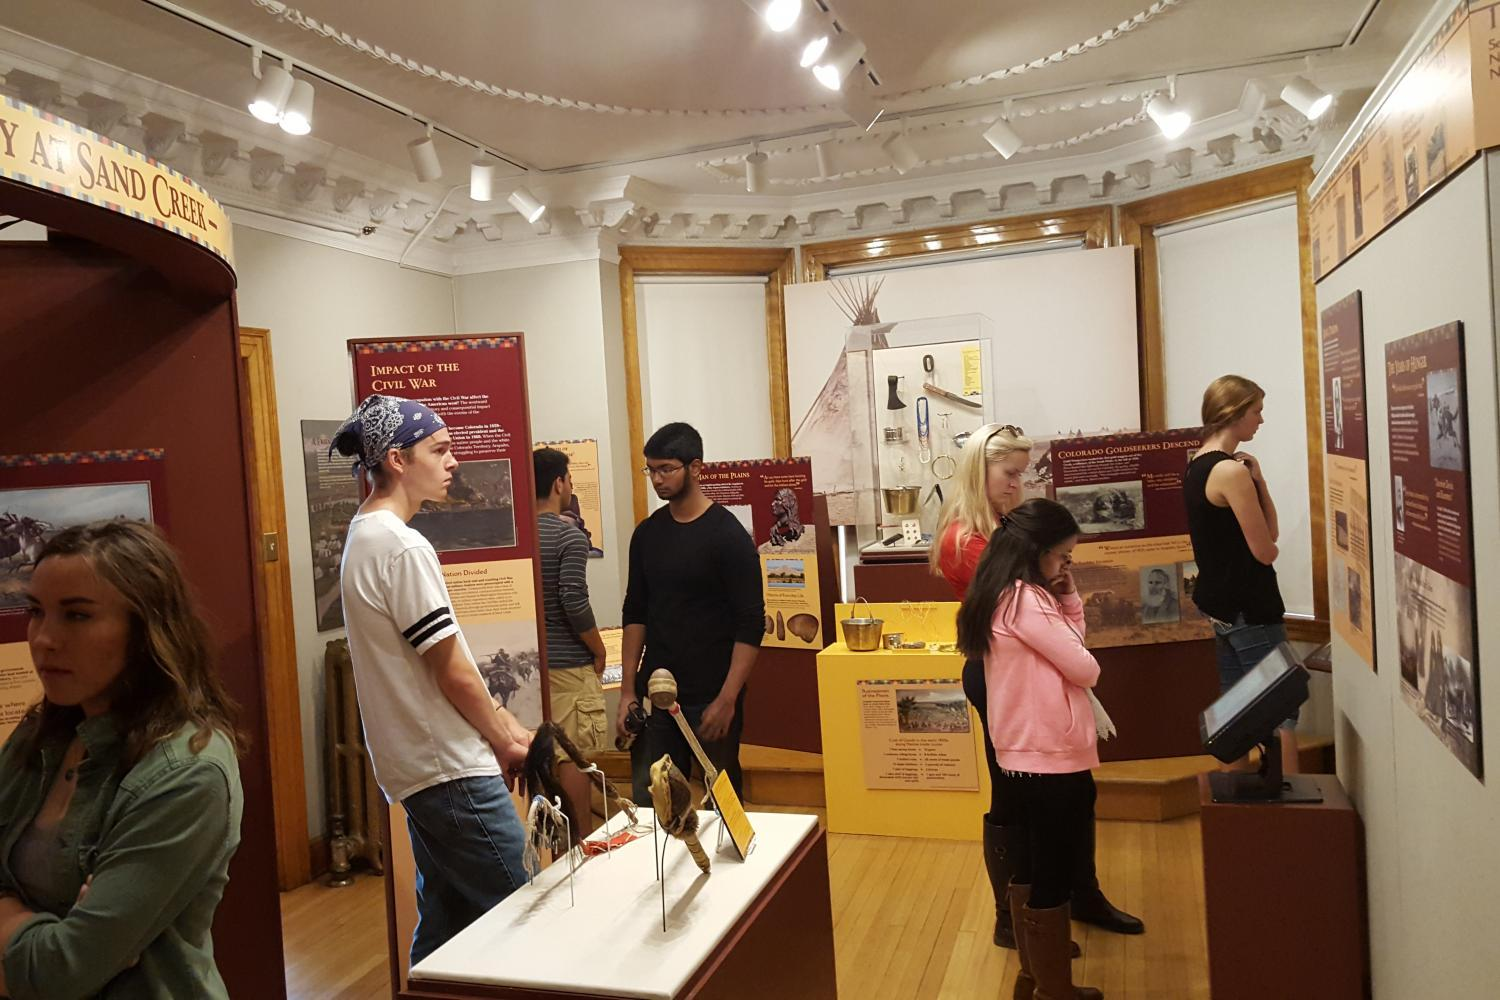 Students looking at an exhibit on Chief Niwot